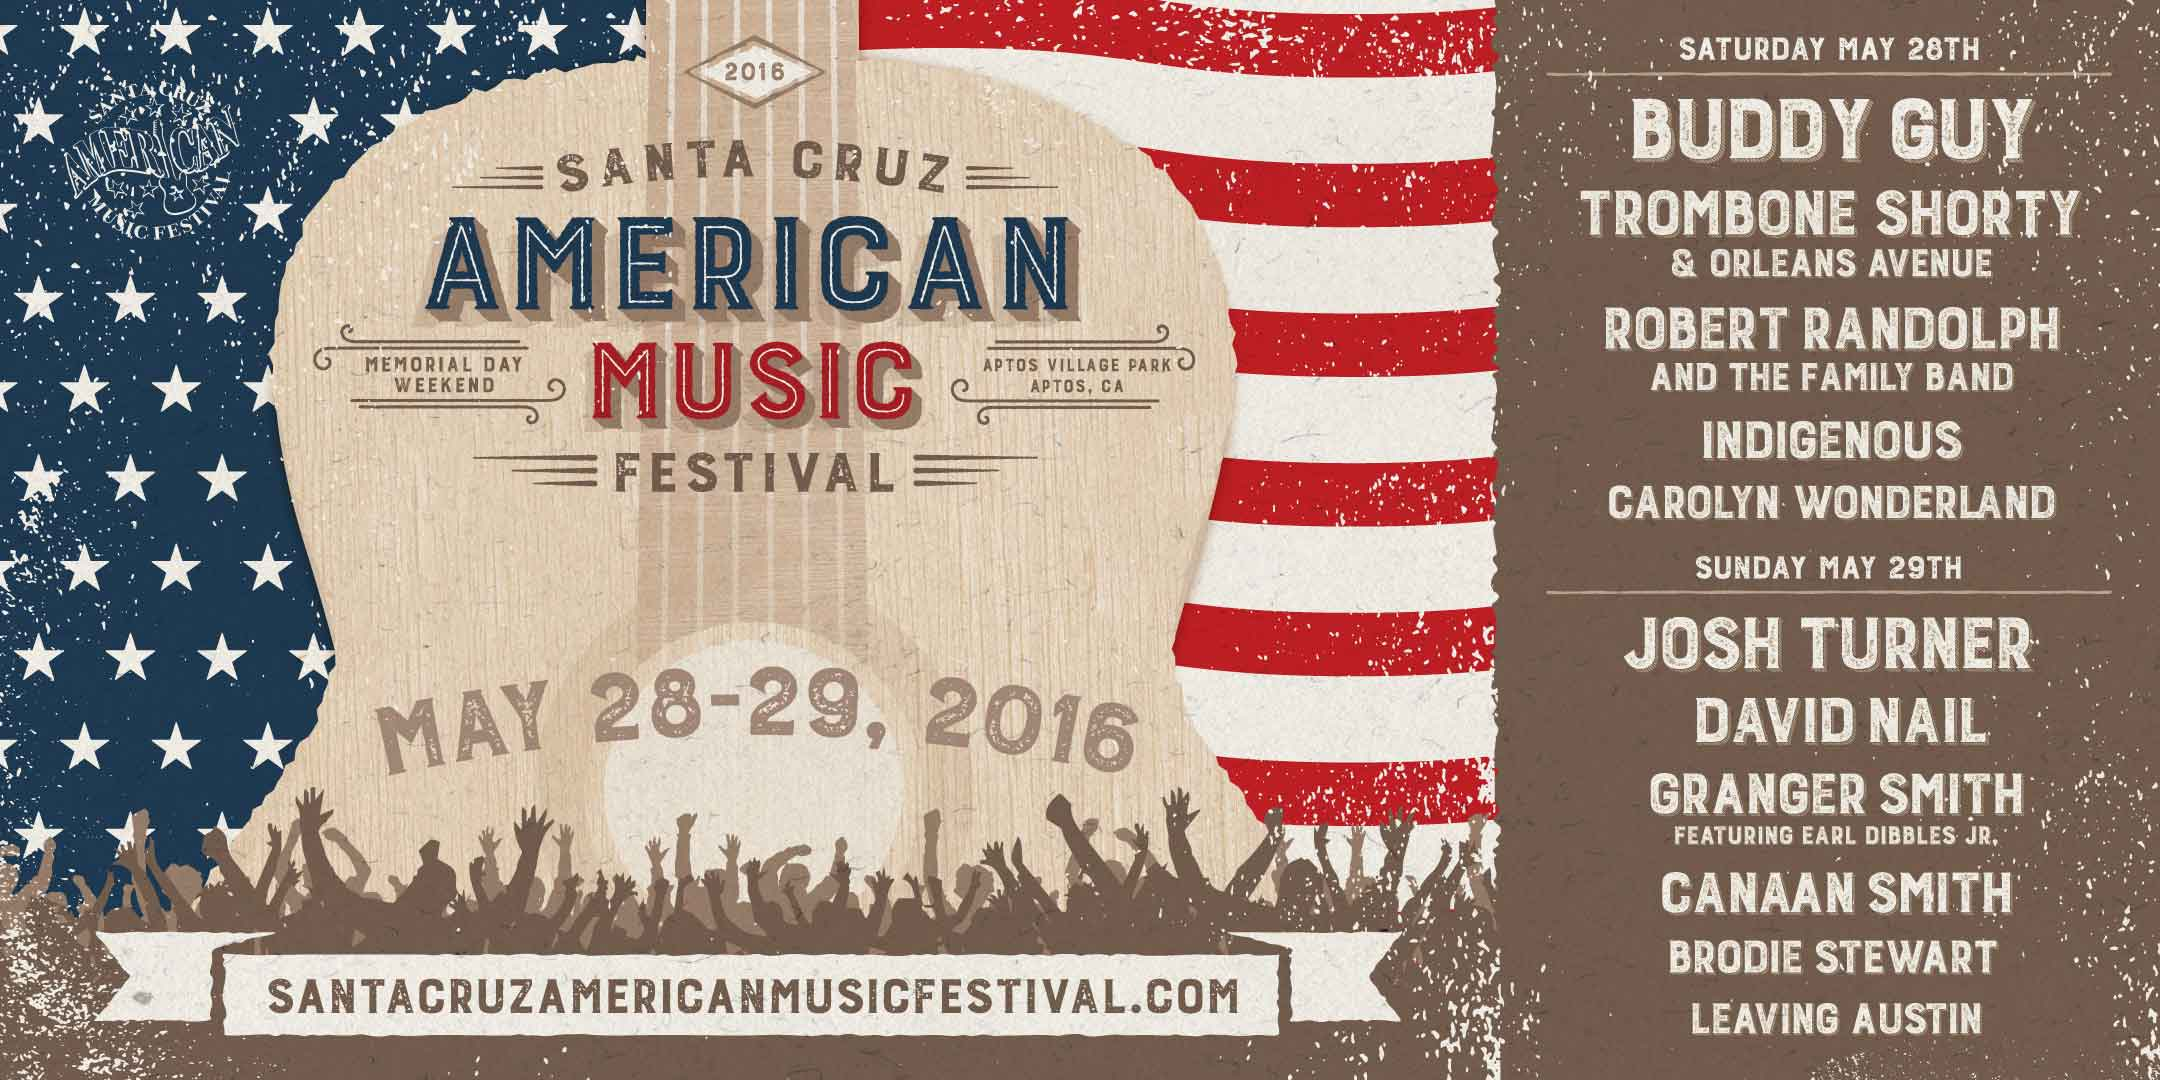 Santa Cruz American Music Festival | May 28 & 29, 2016 | Aptos Village Park in Aptos, CA